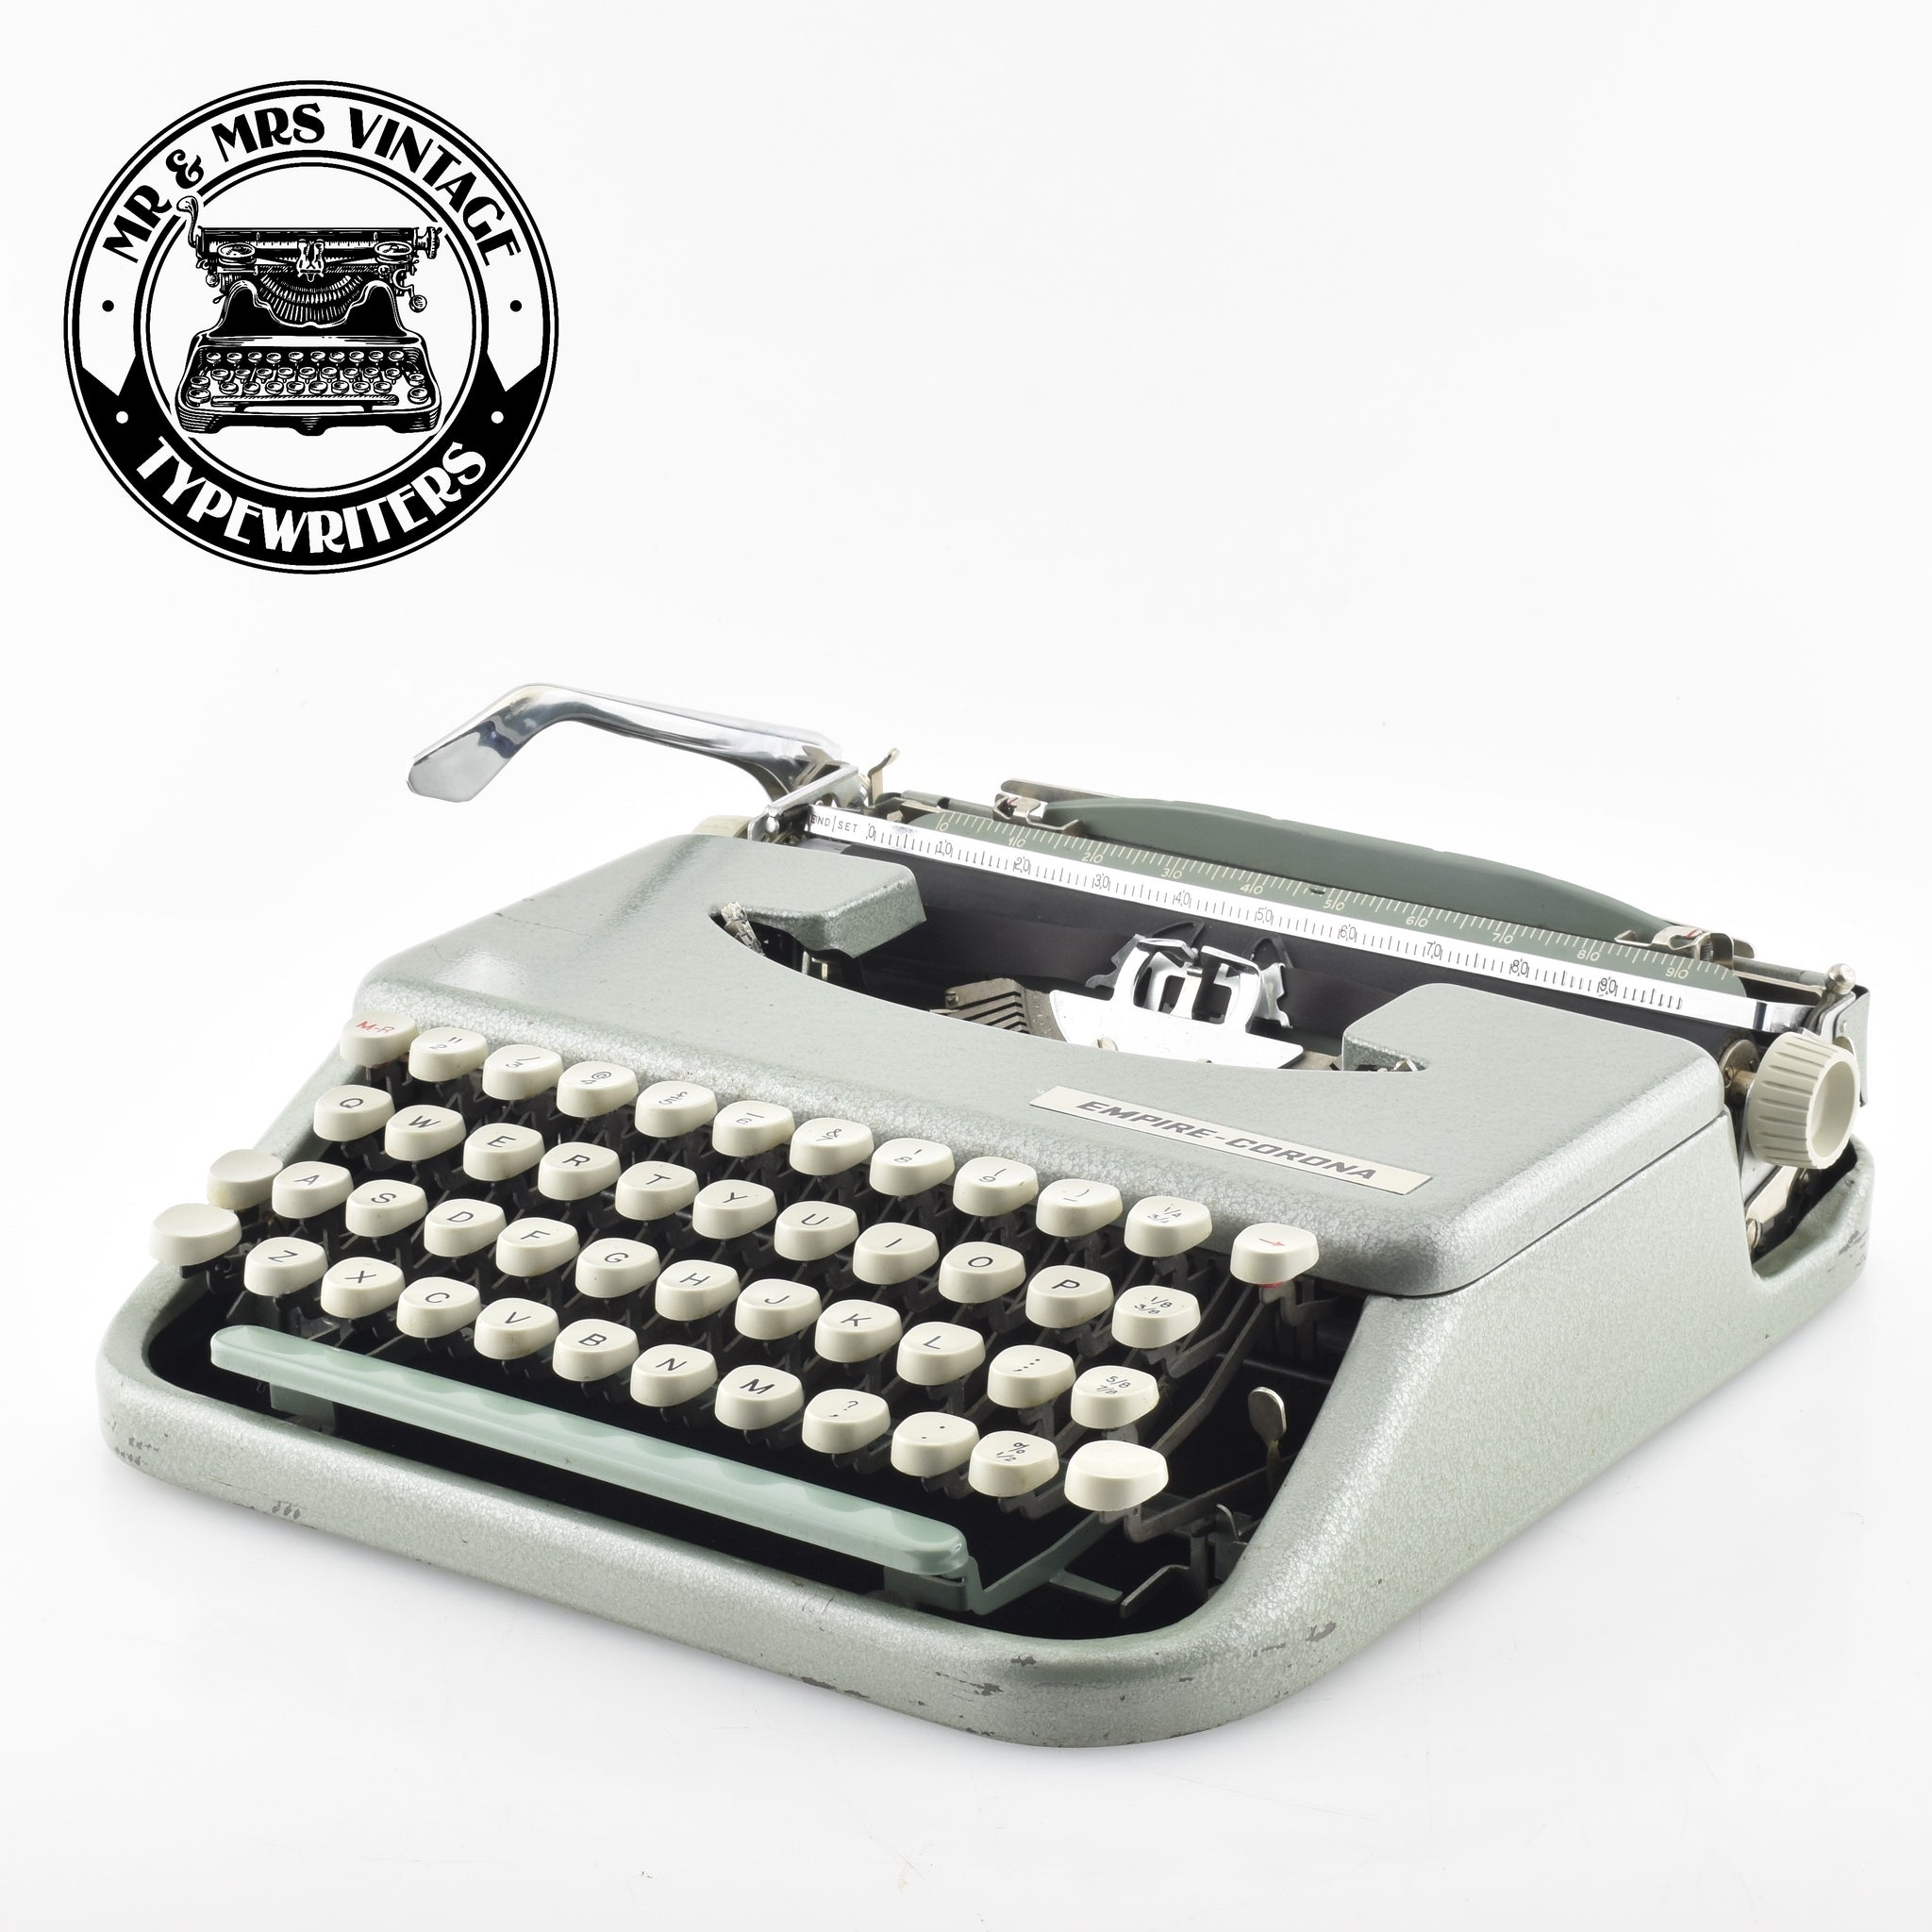 Empire Smith Corona Typewriter ( The Simple Skyriter )